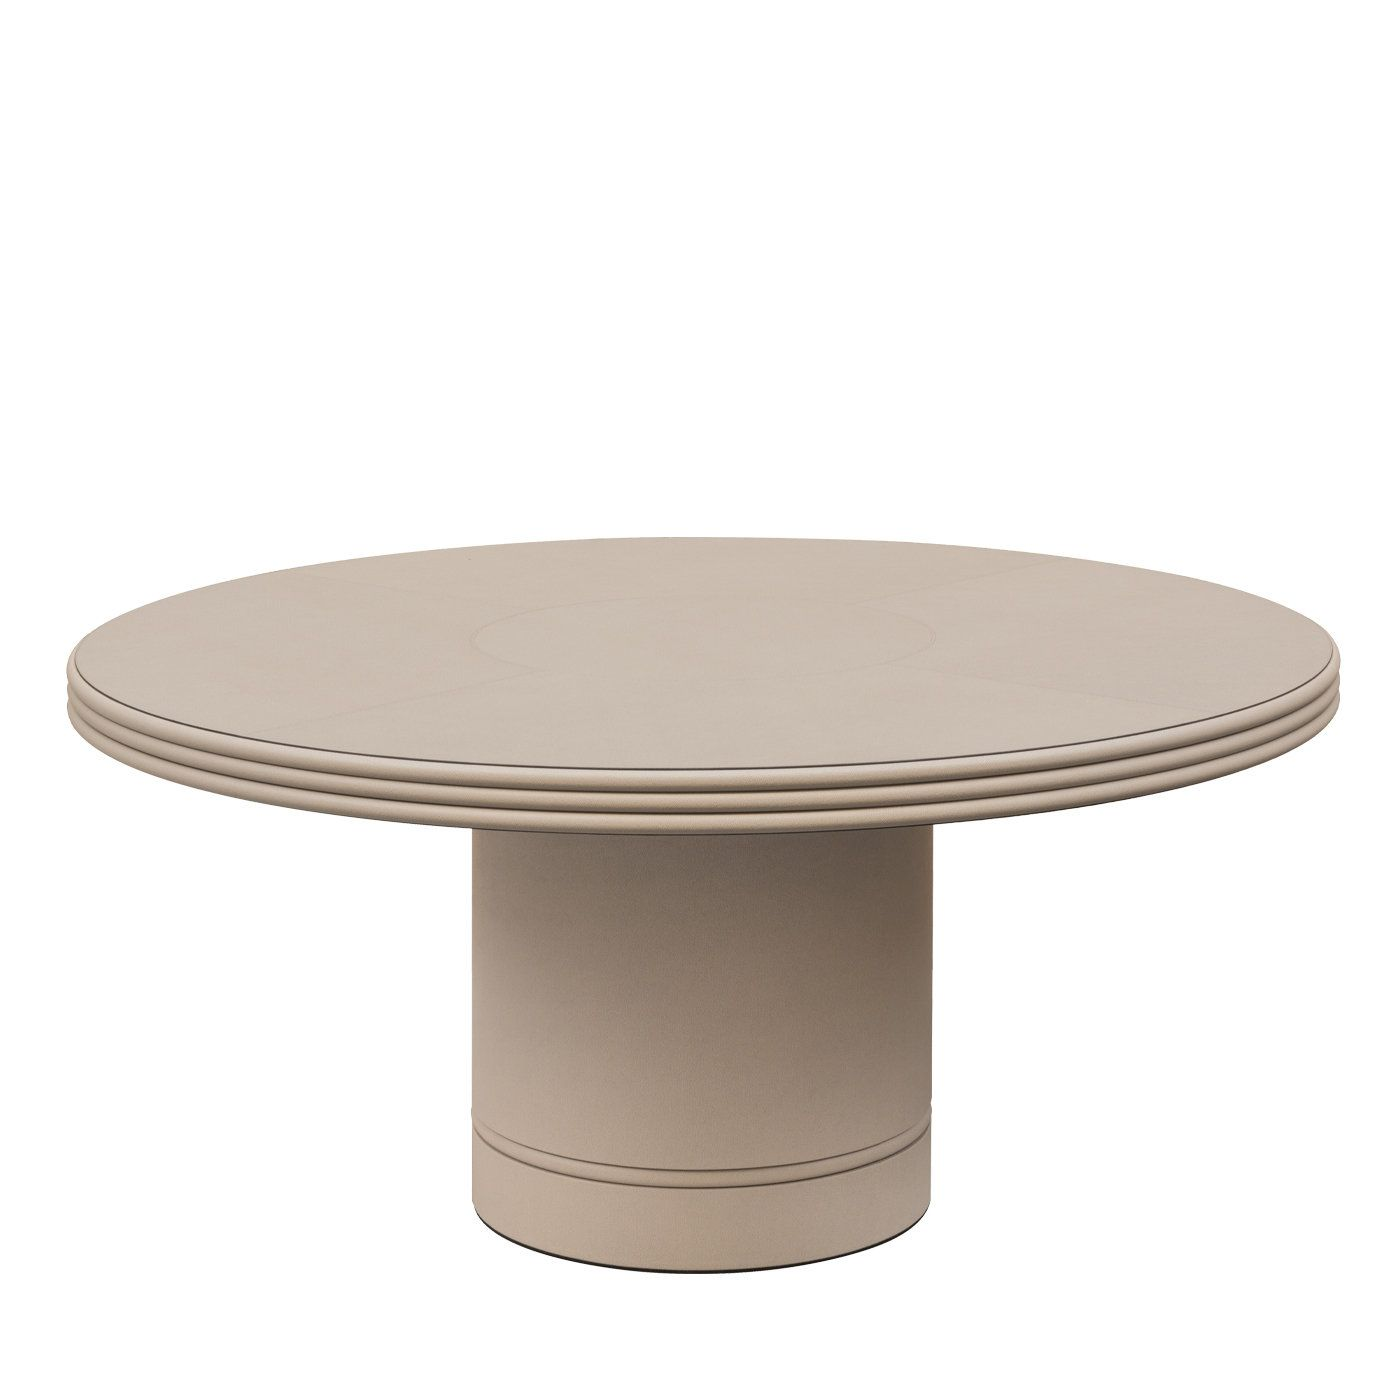 Mother Of Pearl Round Coffee Table Ivory Round Drum Coffee Table Drum Coffee Table Coffee Table Wood [ 1500 x 1500 Pixel ]